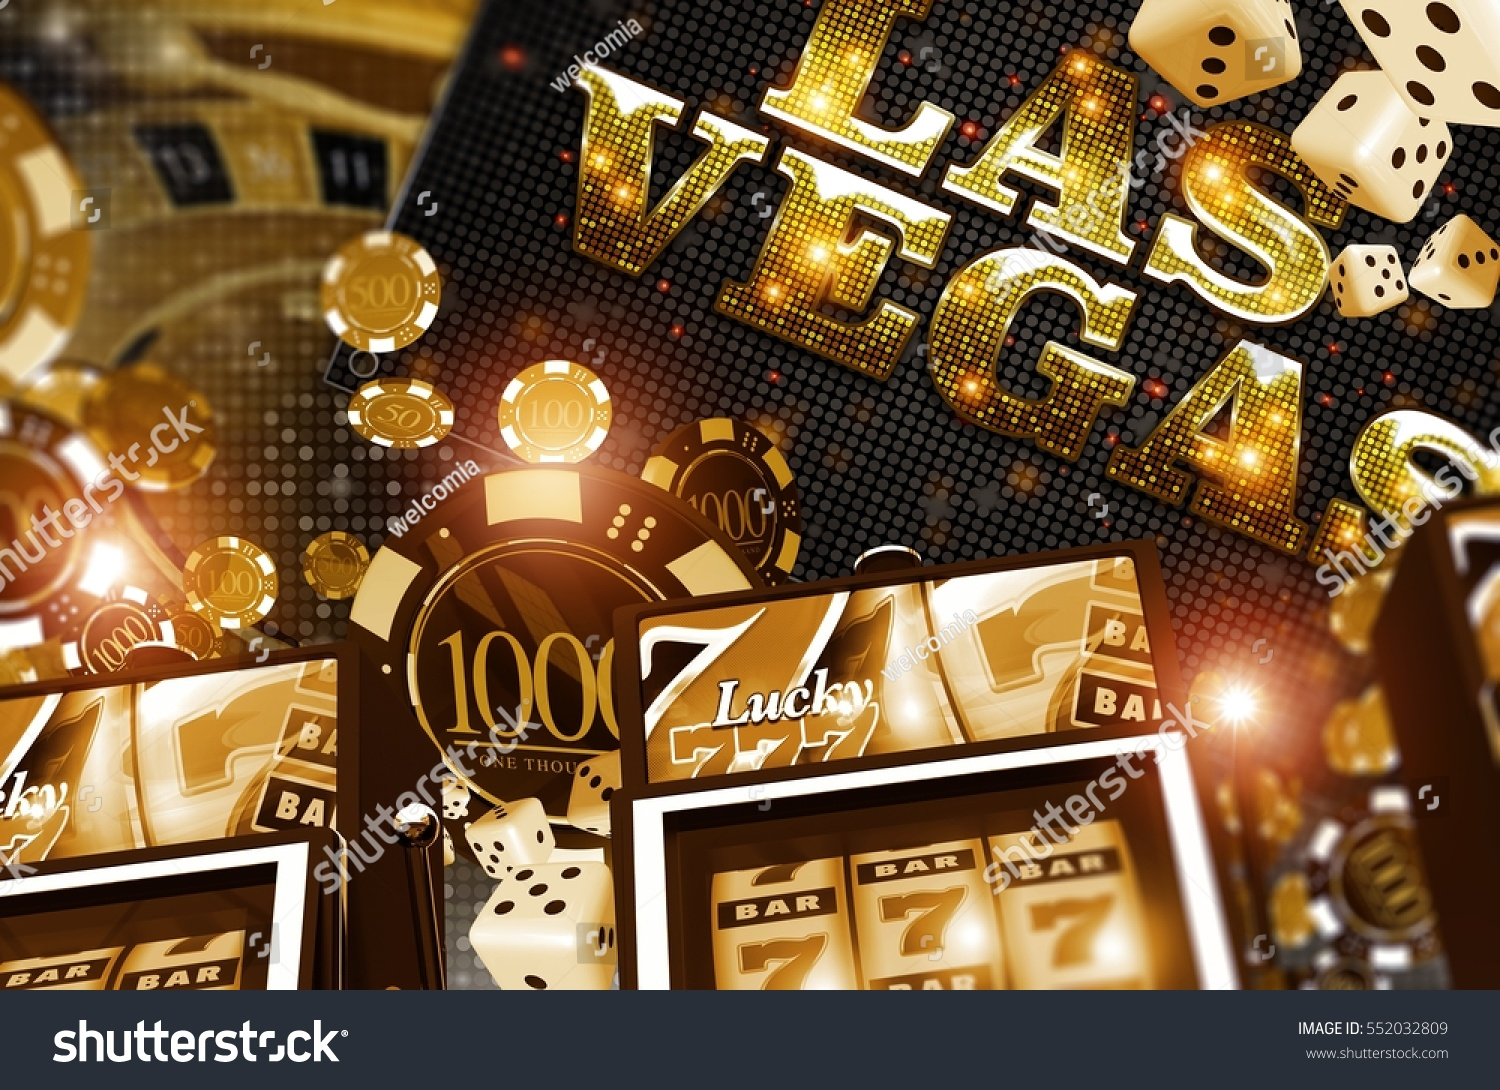 Golden Vegas Casino Concept Casino Games Stock Illustration ...